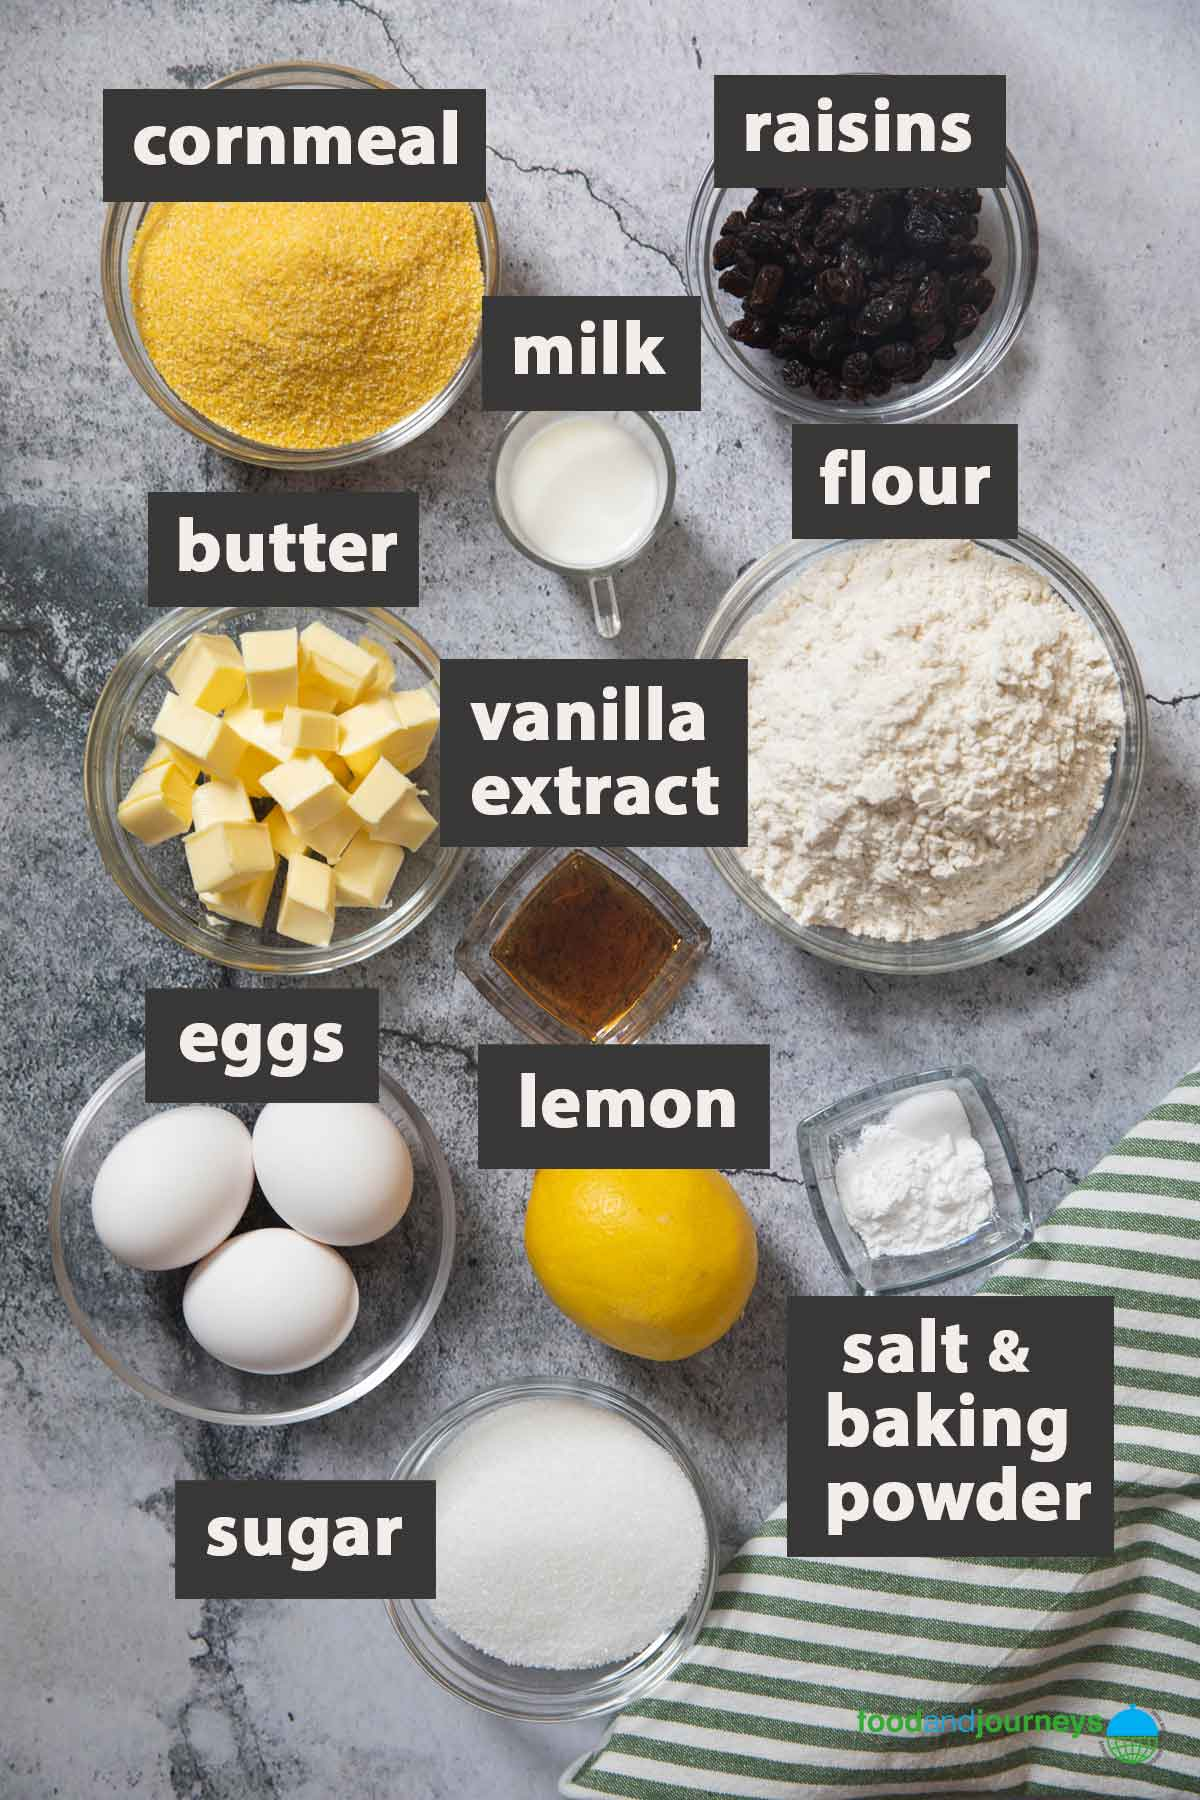 An image showing all the ingredients you need to make zaleti at home.